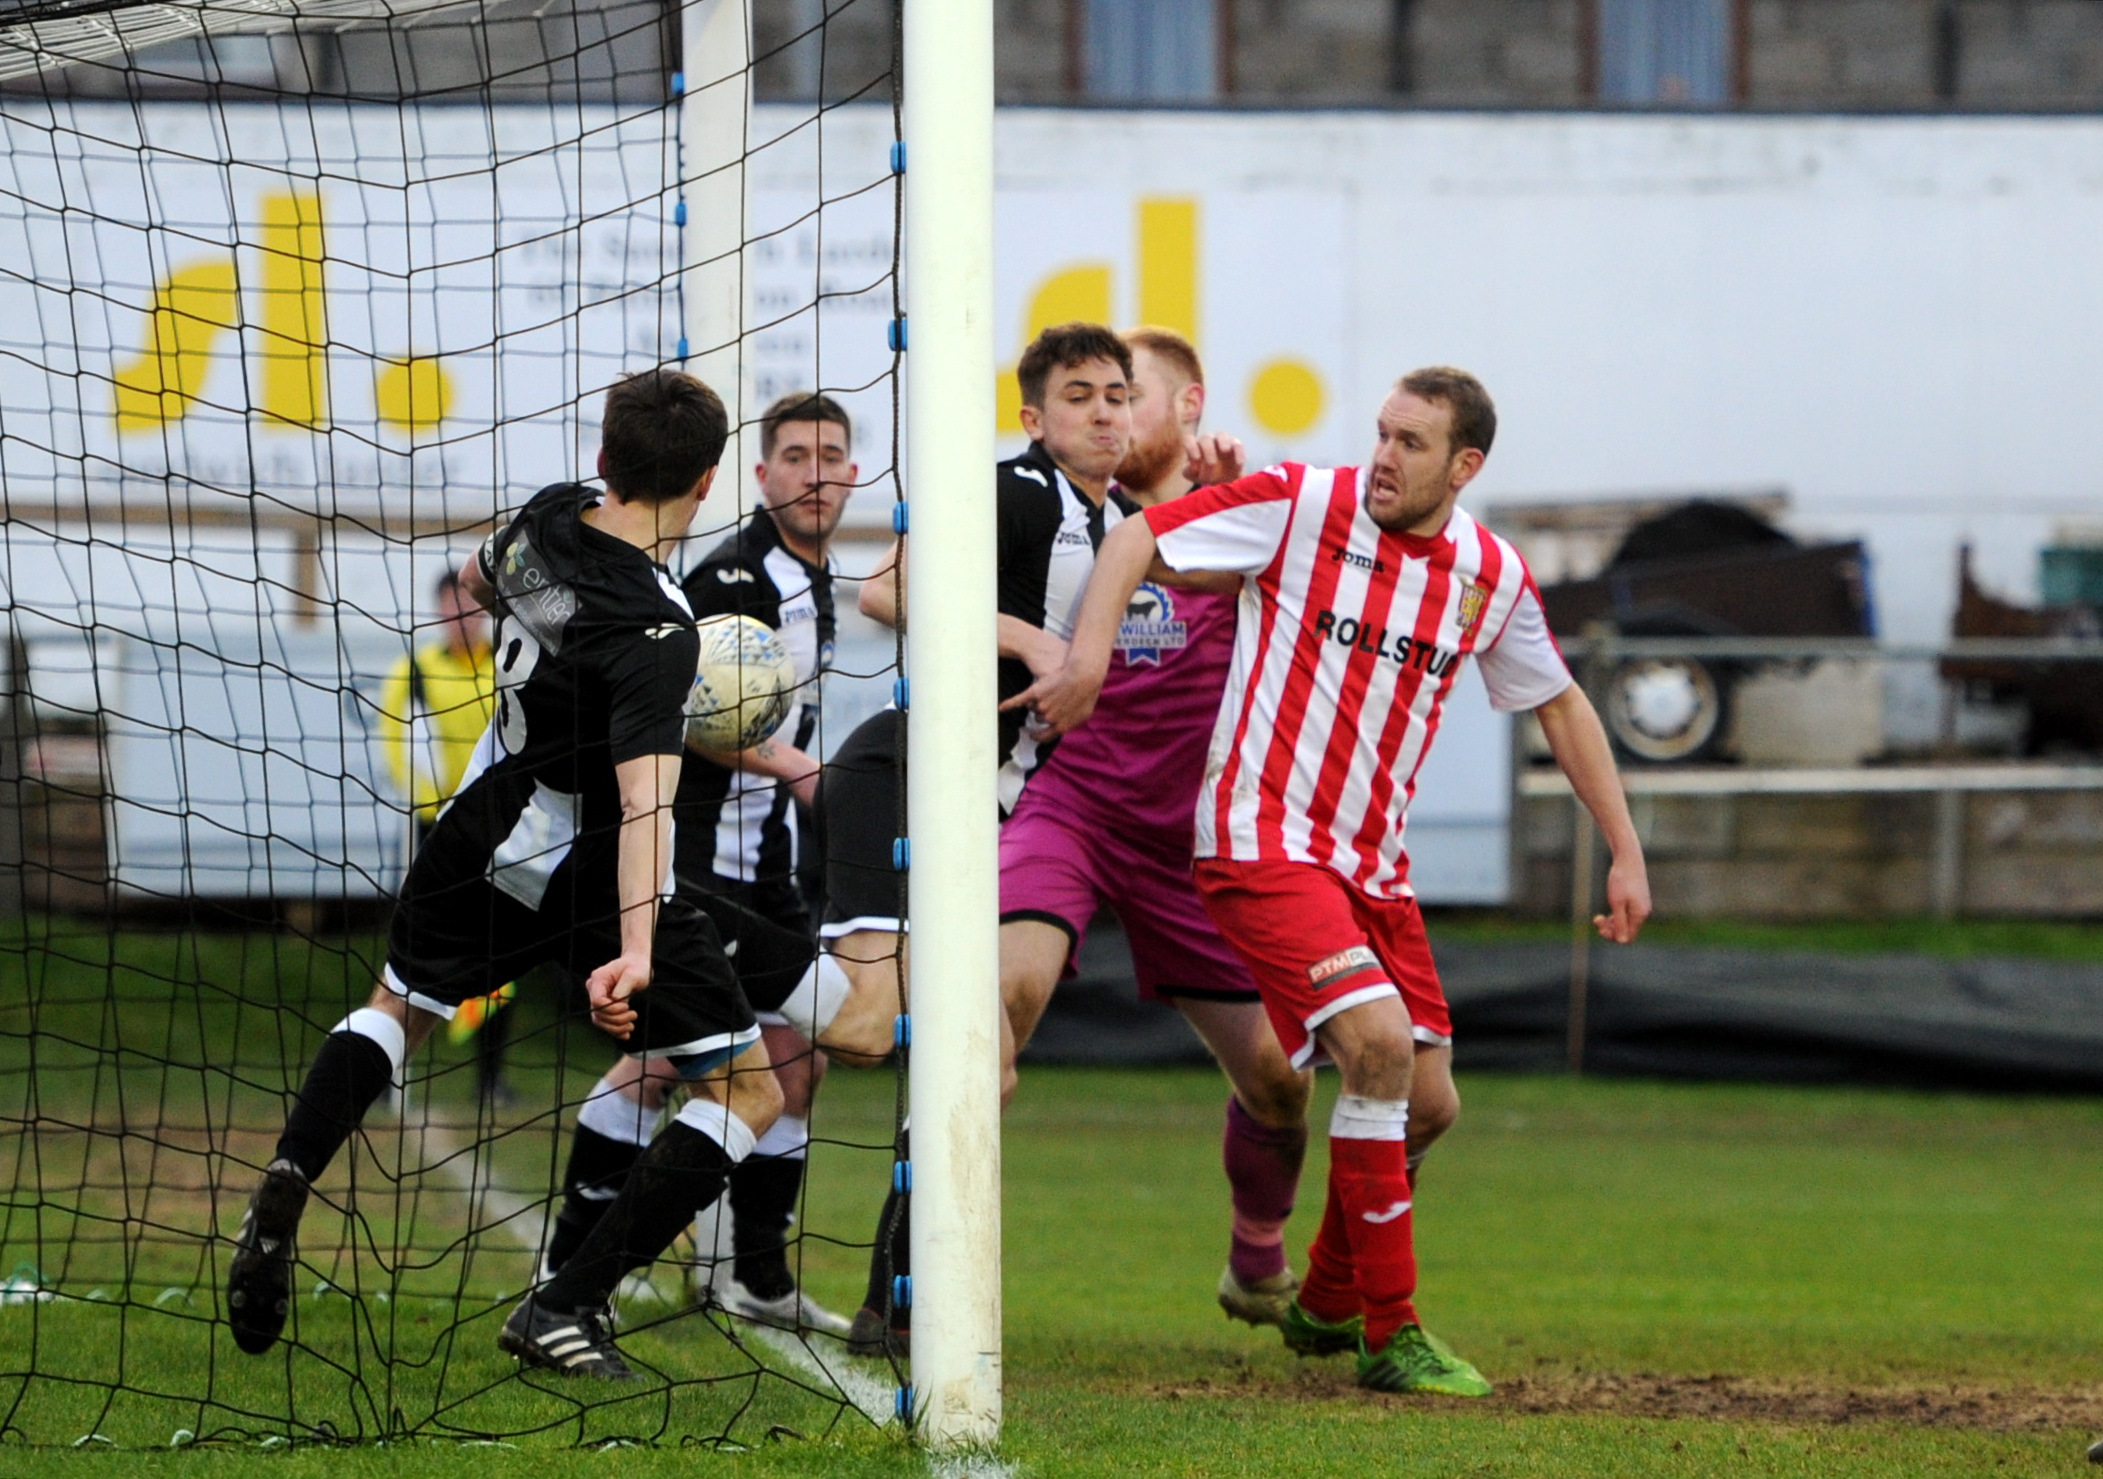 Pictured is the ball appearing to cross the line for a Formartine equaliser, however it was not given by the referee. Picture by Darrell Benns